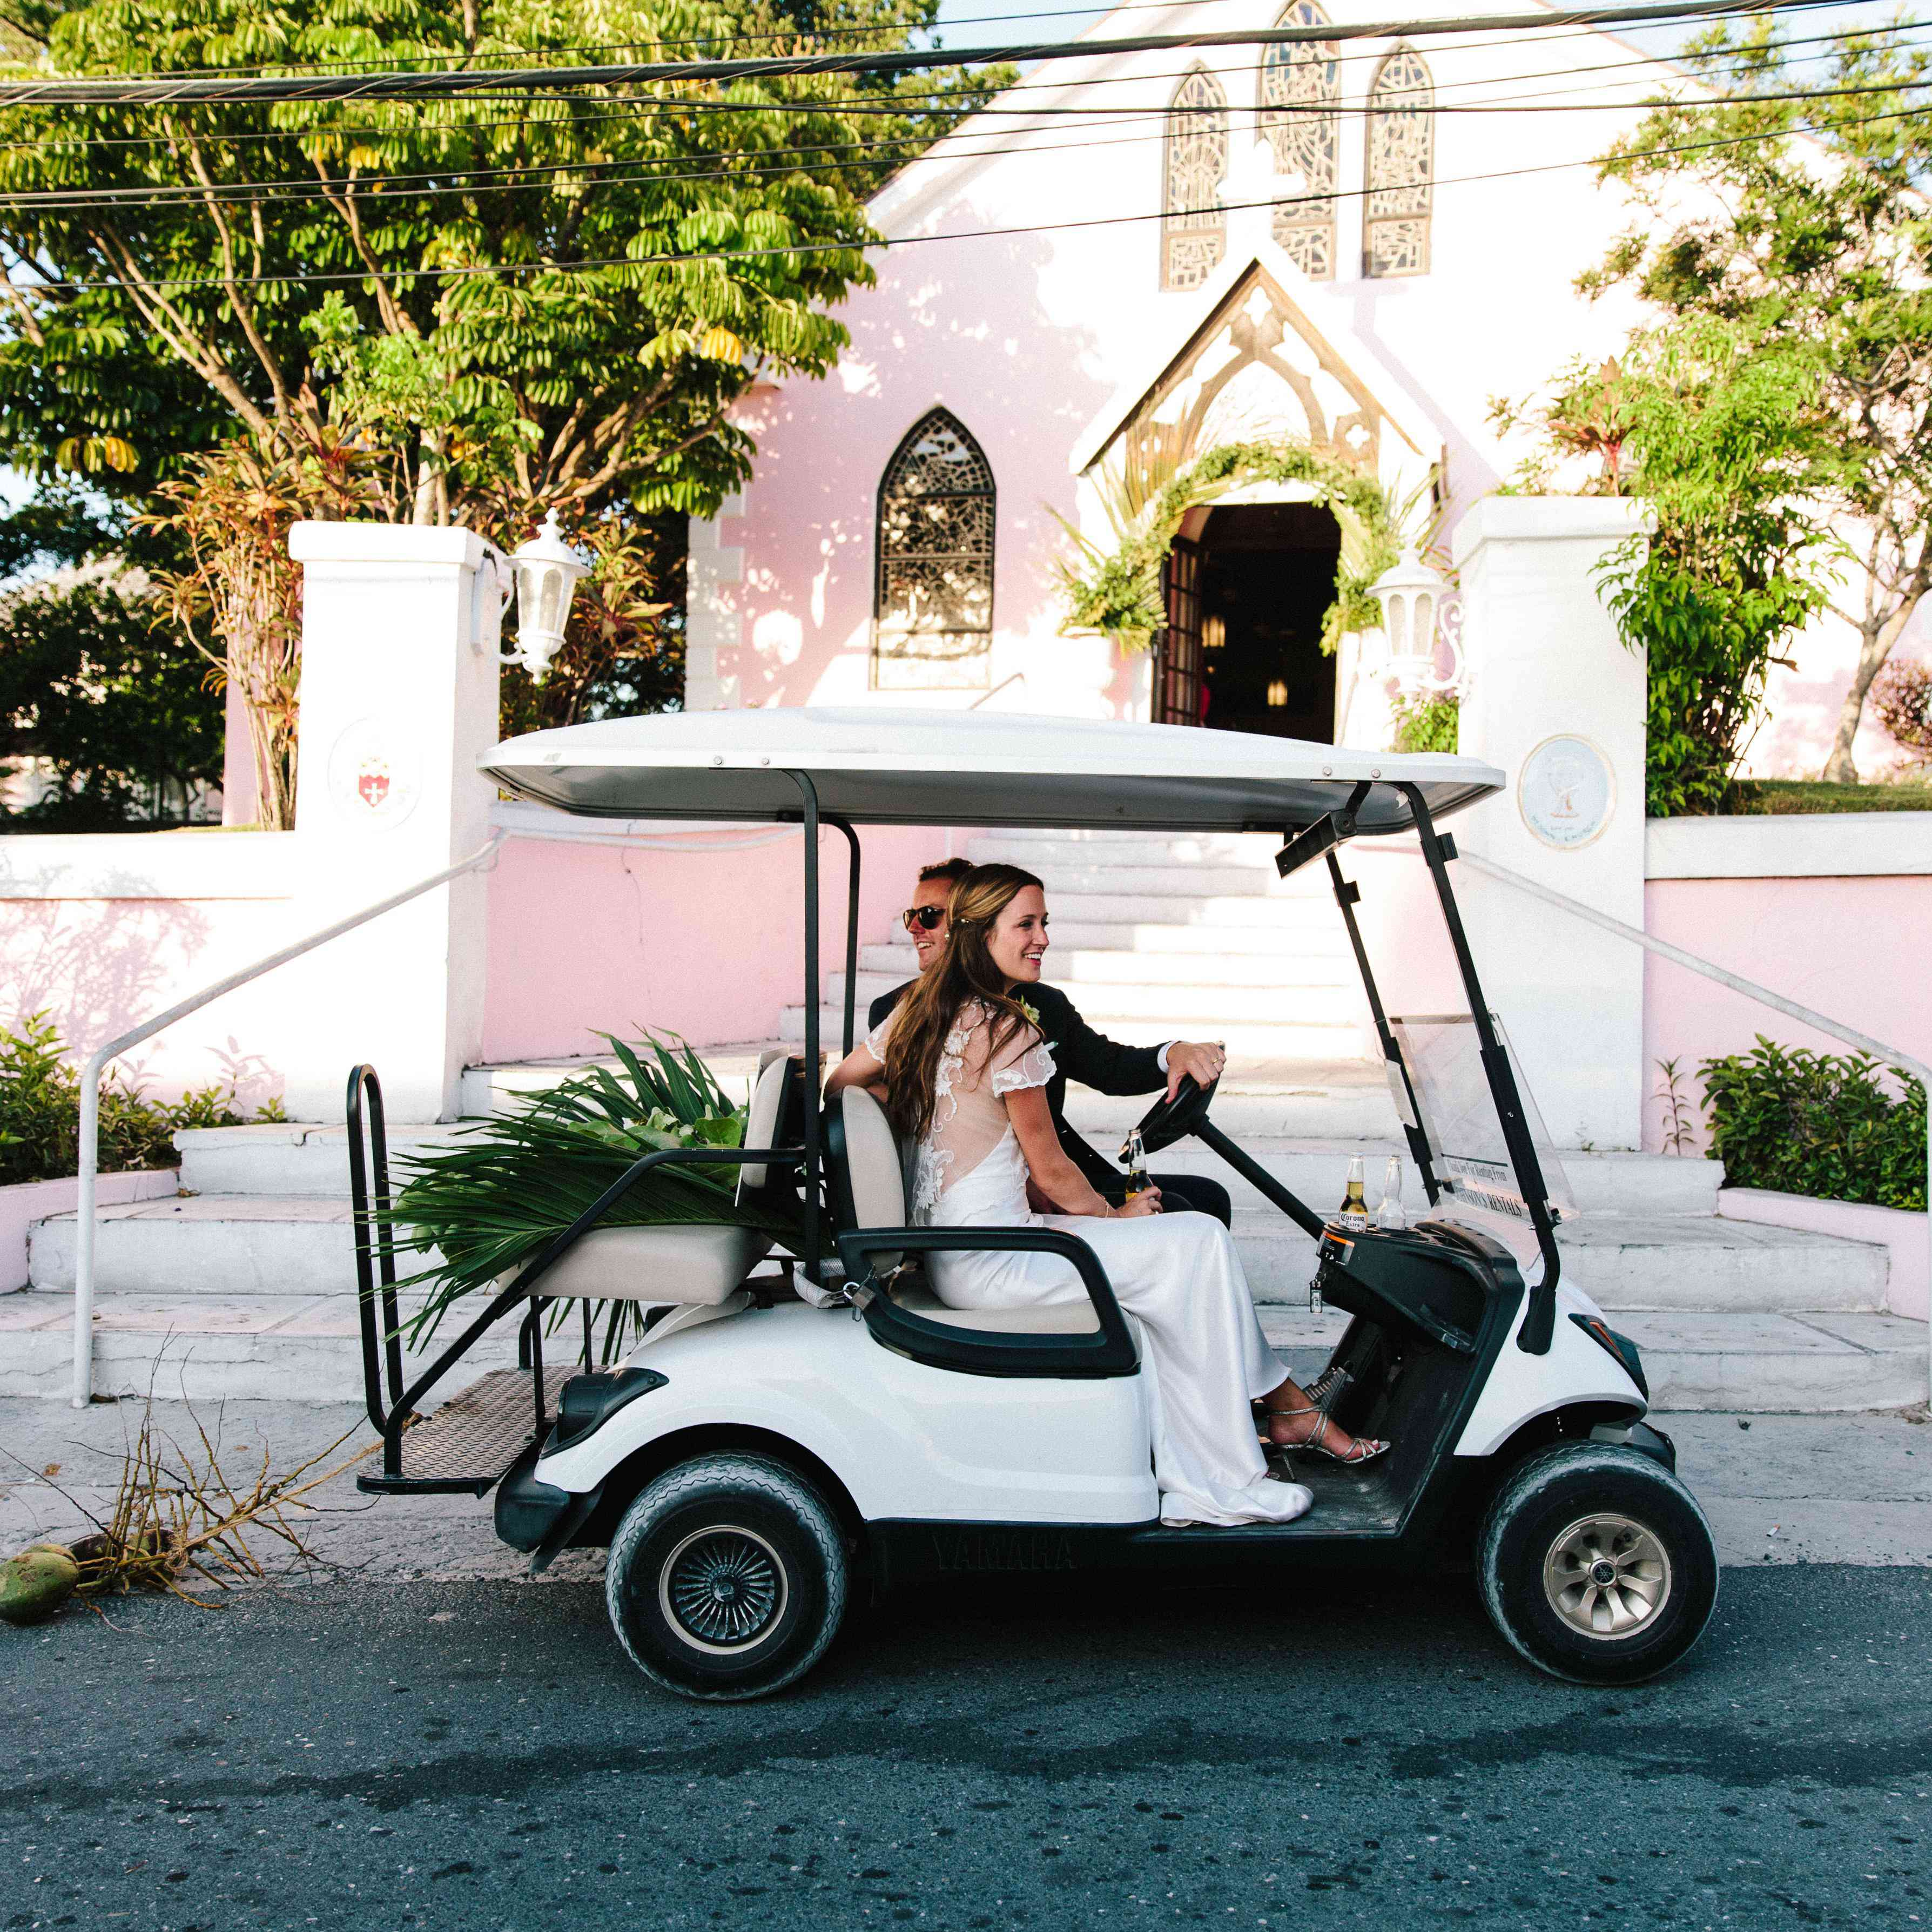 20 Creative Wedding Transportation Ideas For You And Your Guests